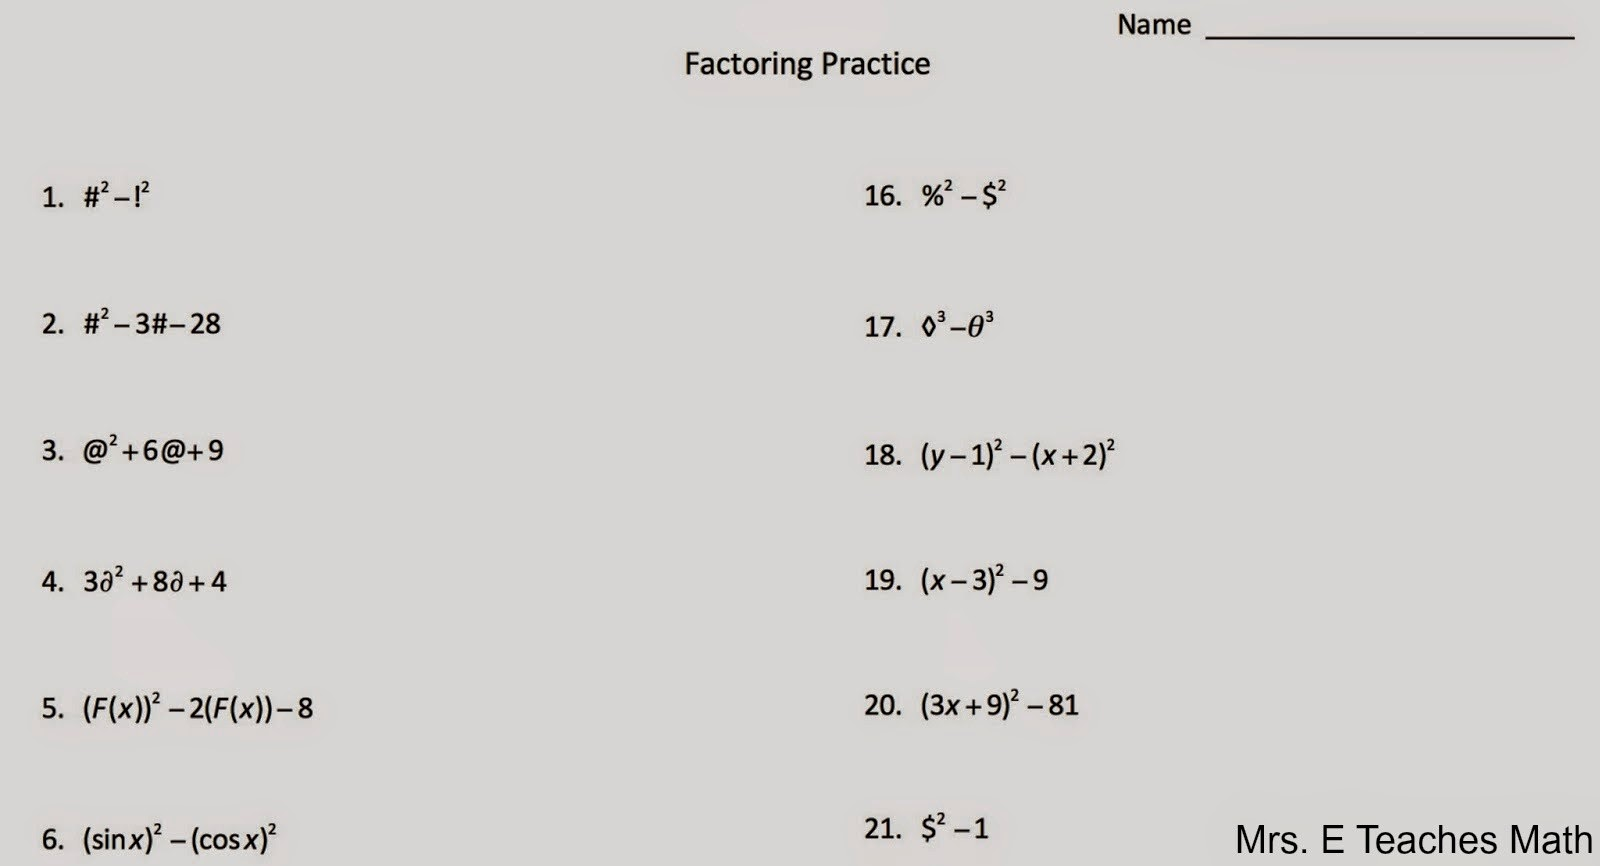 Worksheets Algebra 2 Factoring Worksheet factoring worksheet algebra 2 worksheets polynomial functions worksheets